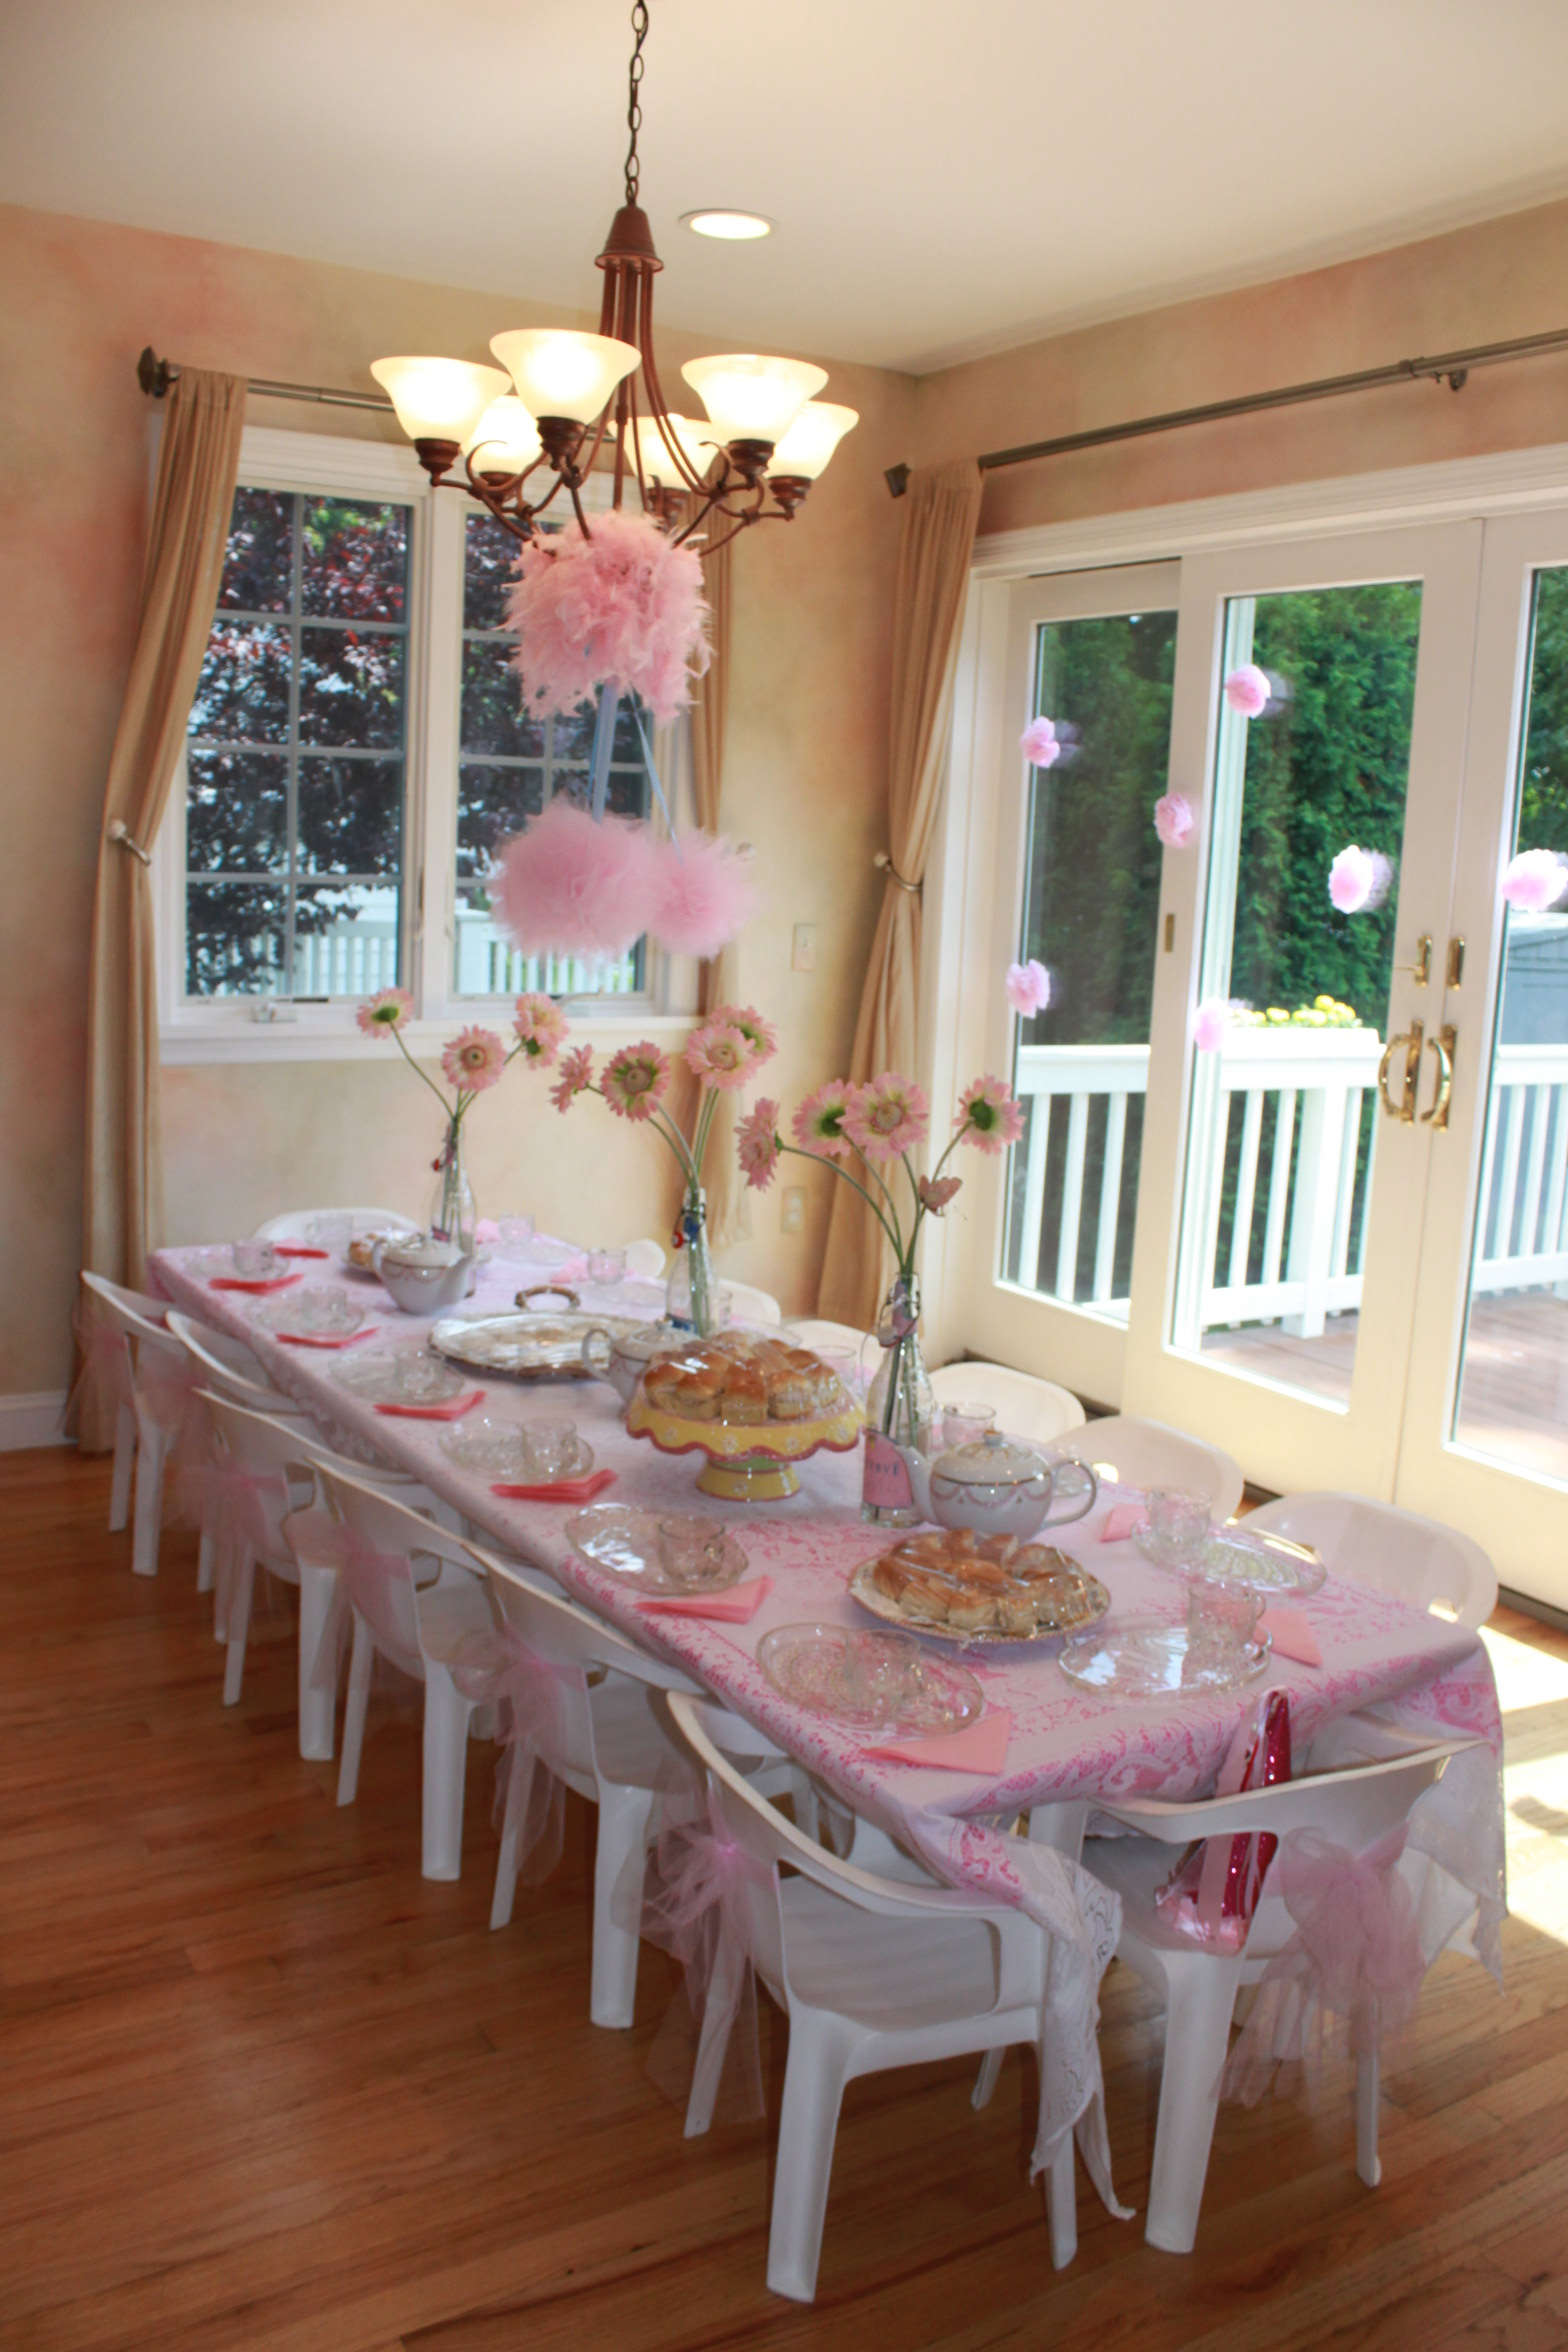 Partying with the princesses princess tea party for Princess birthday party crafts